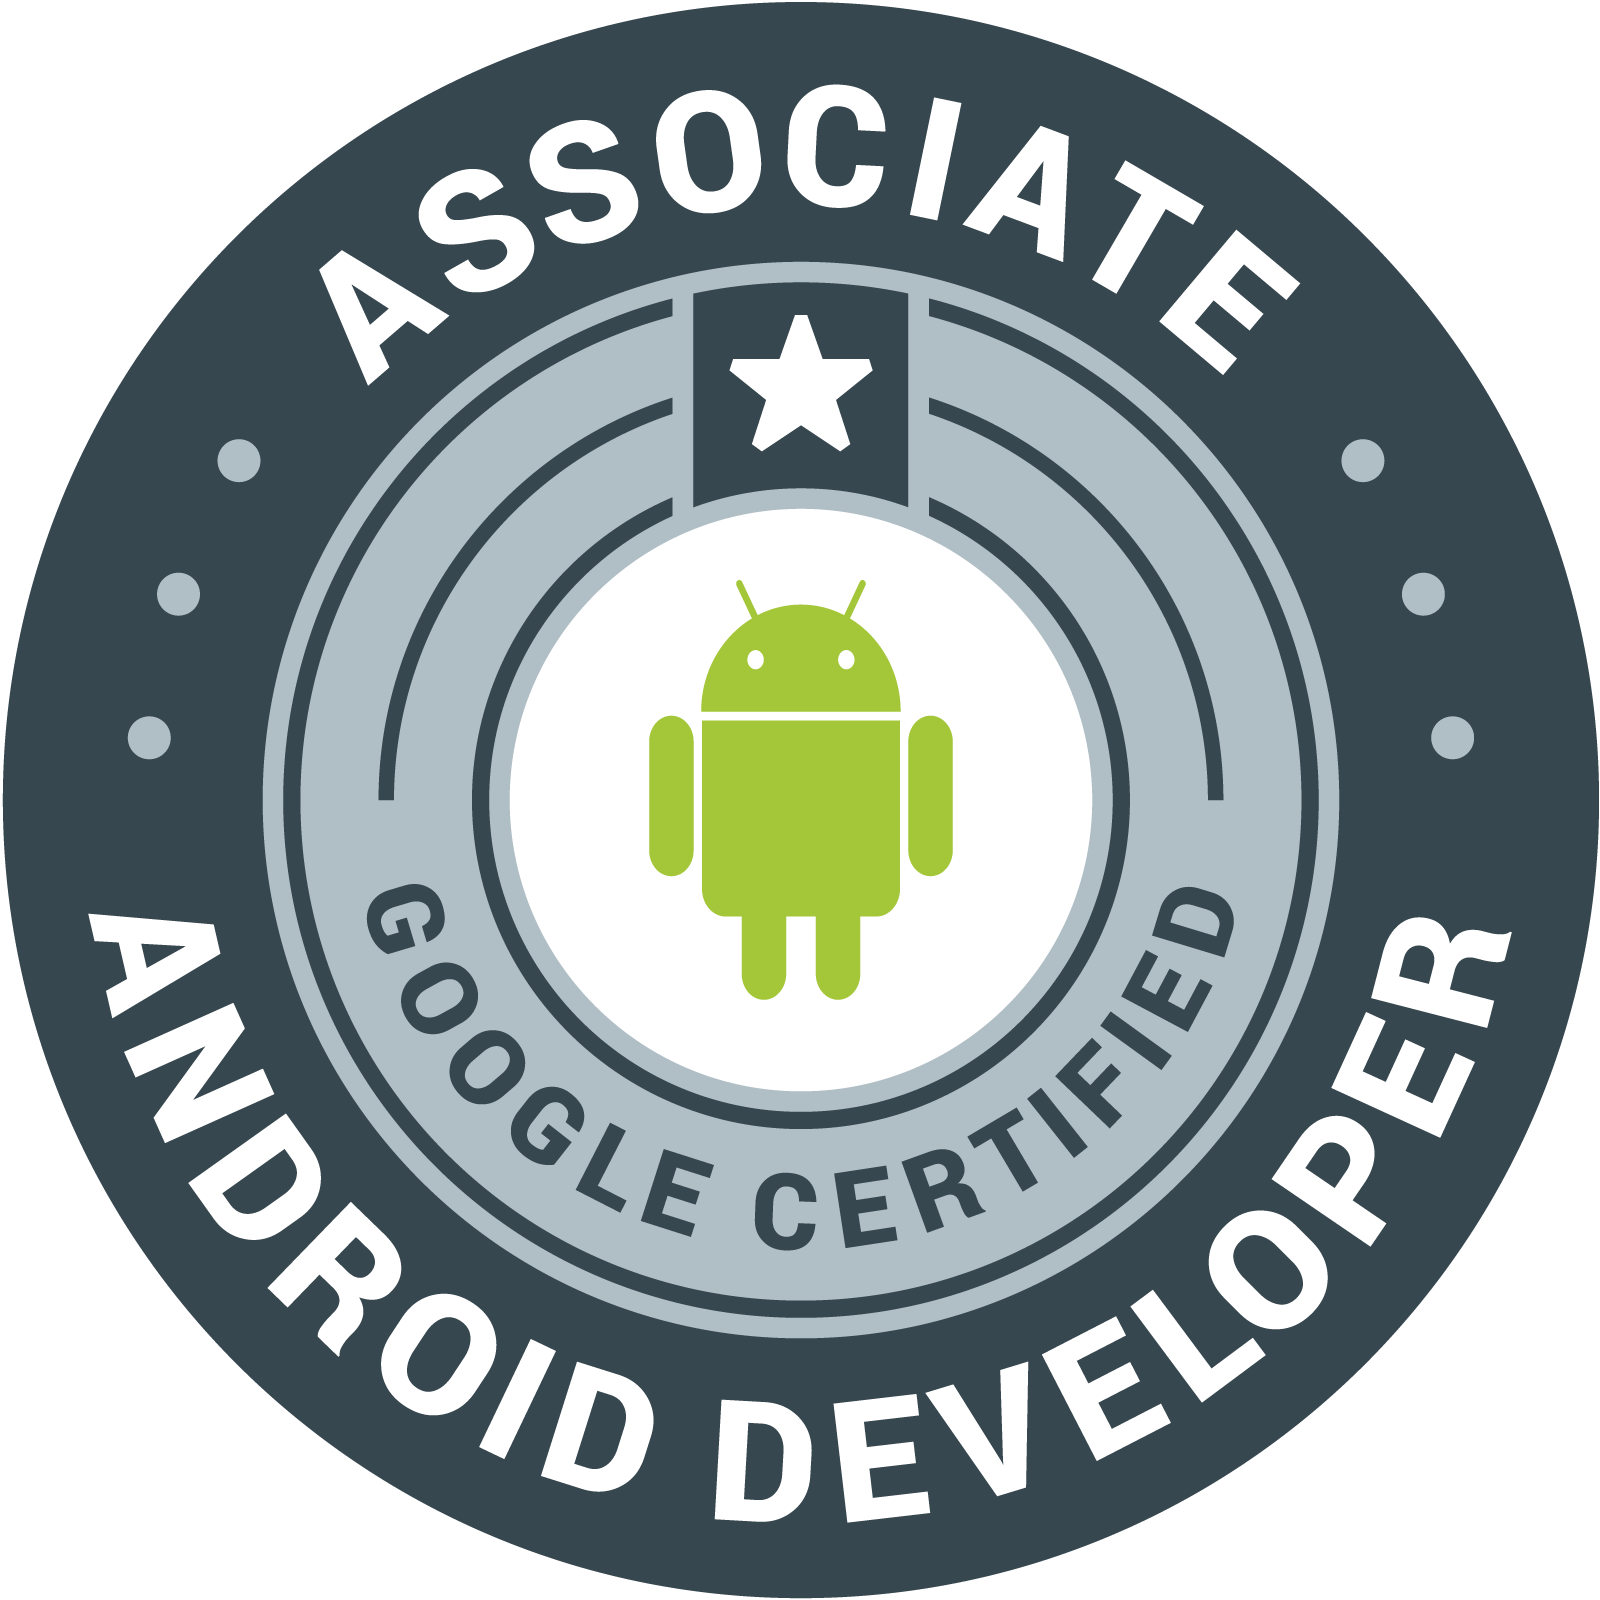 Associate Android Developer badge